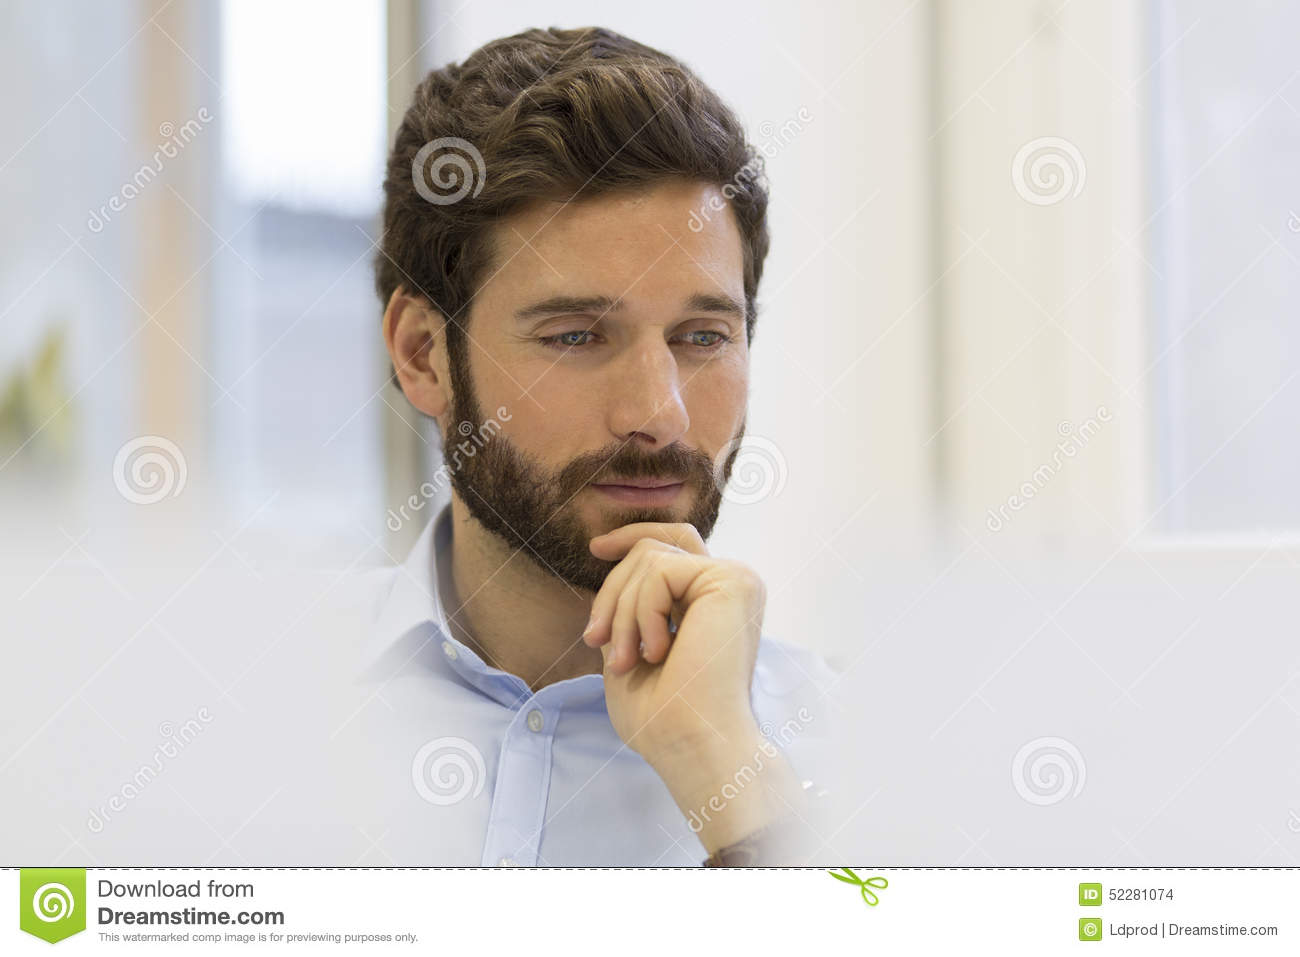 Portrait Of Handsome Hipster Style Bearded Man In Office Stock Photo - Image: 52281074